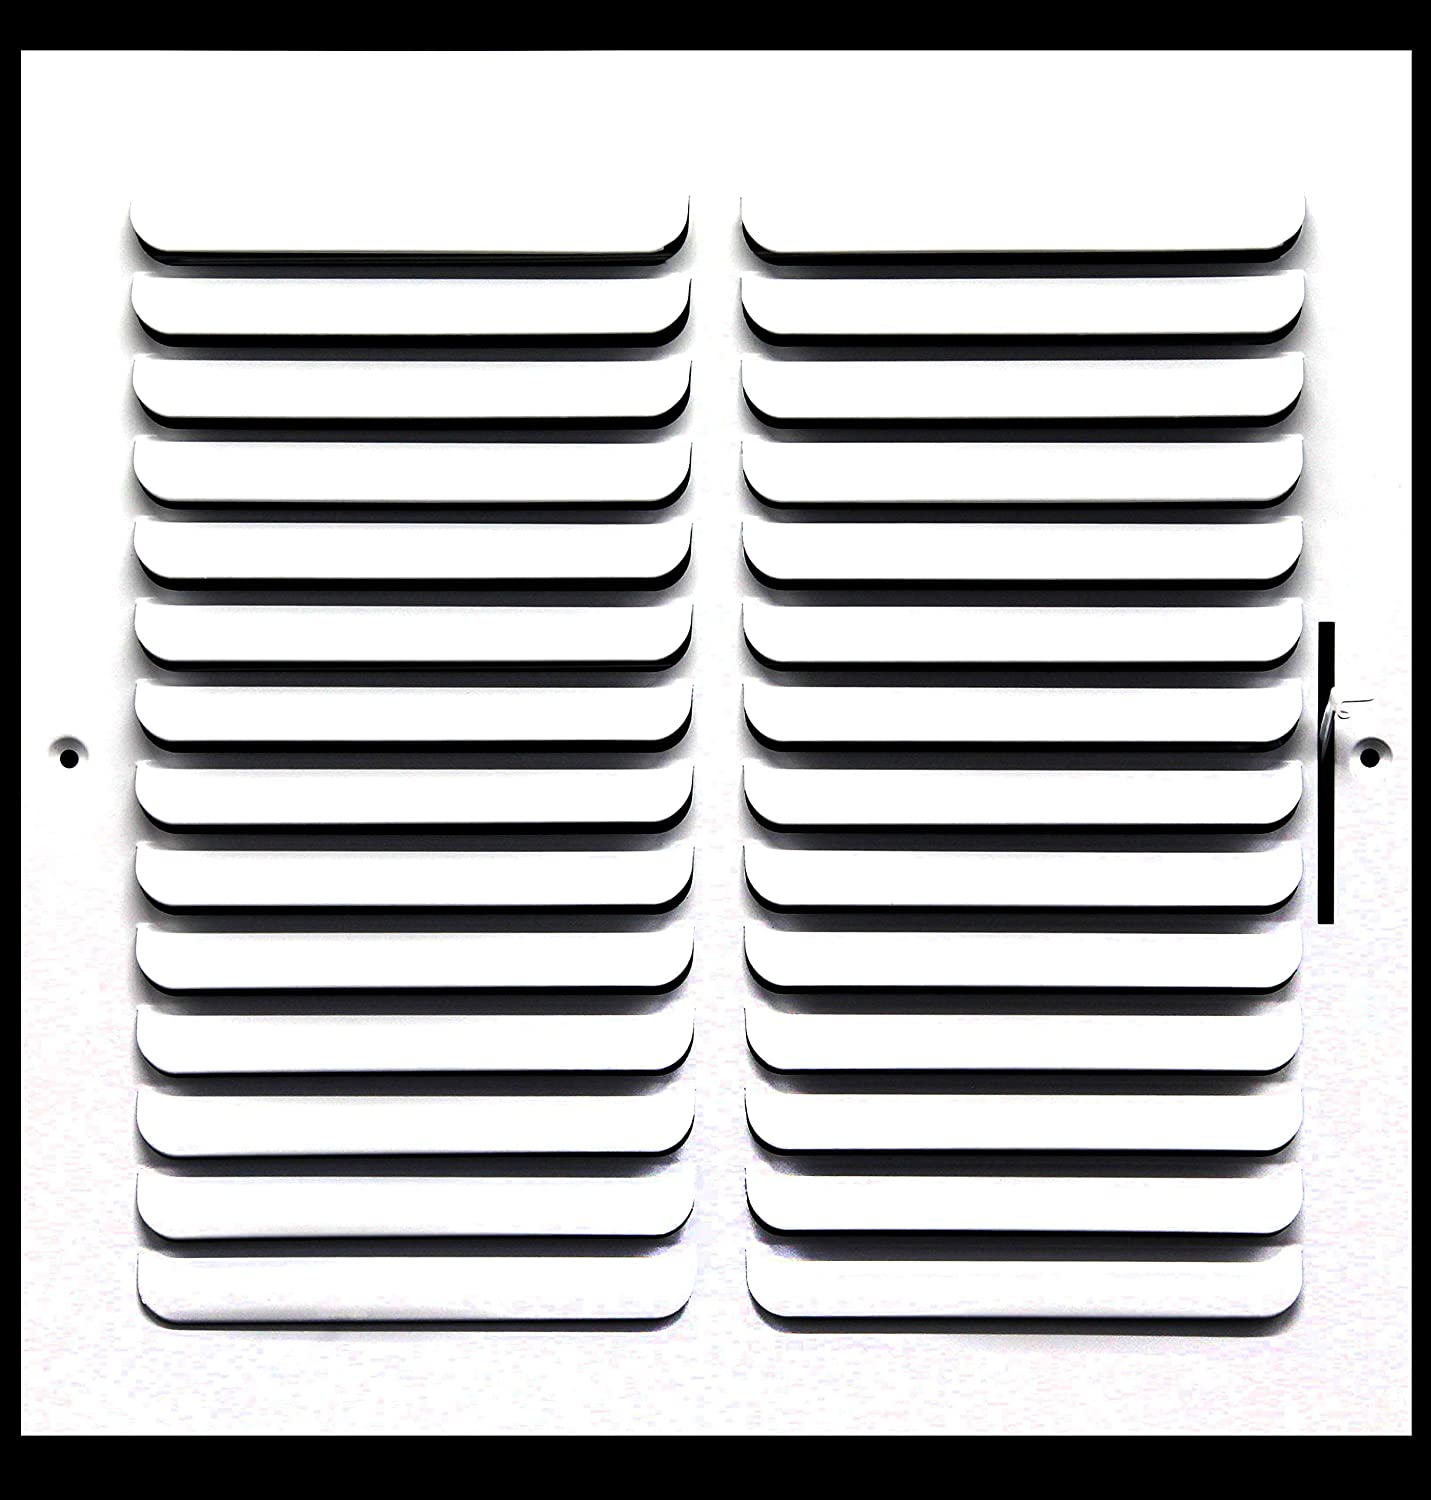 Grille Register Sidewall or Ceiling Vent Duct Cover 6 X 6 1-Way Fixed Curved Blade AIR Supply Diffuser White High Airflow